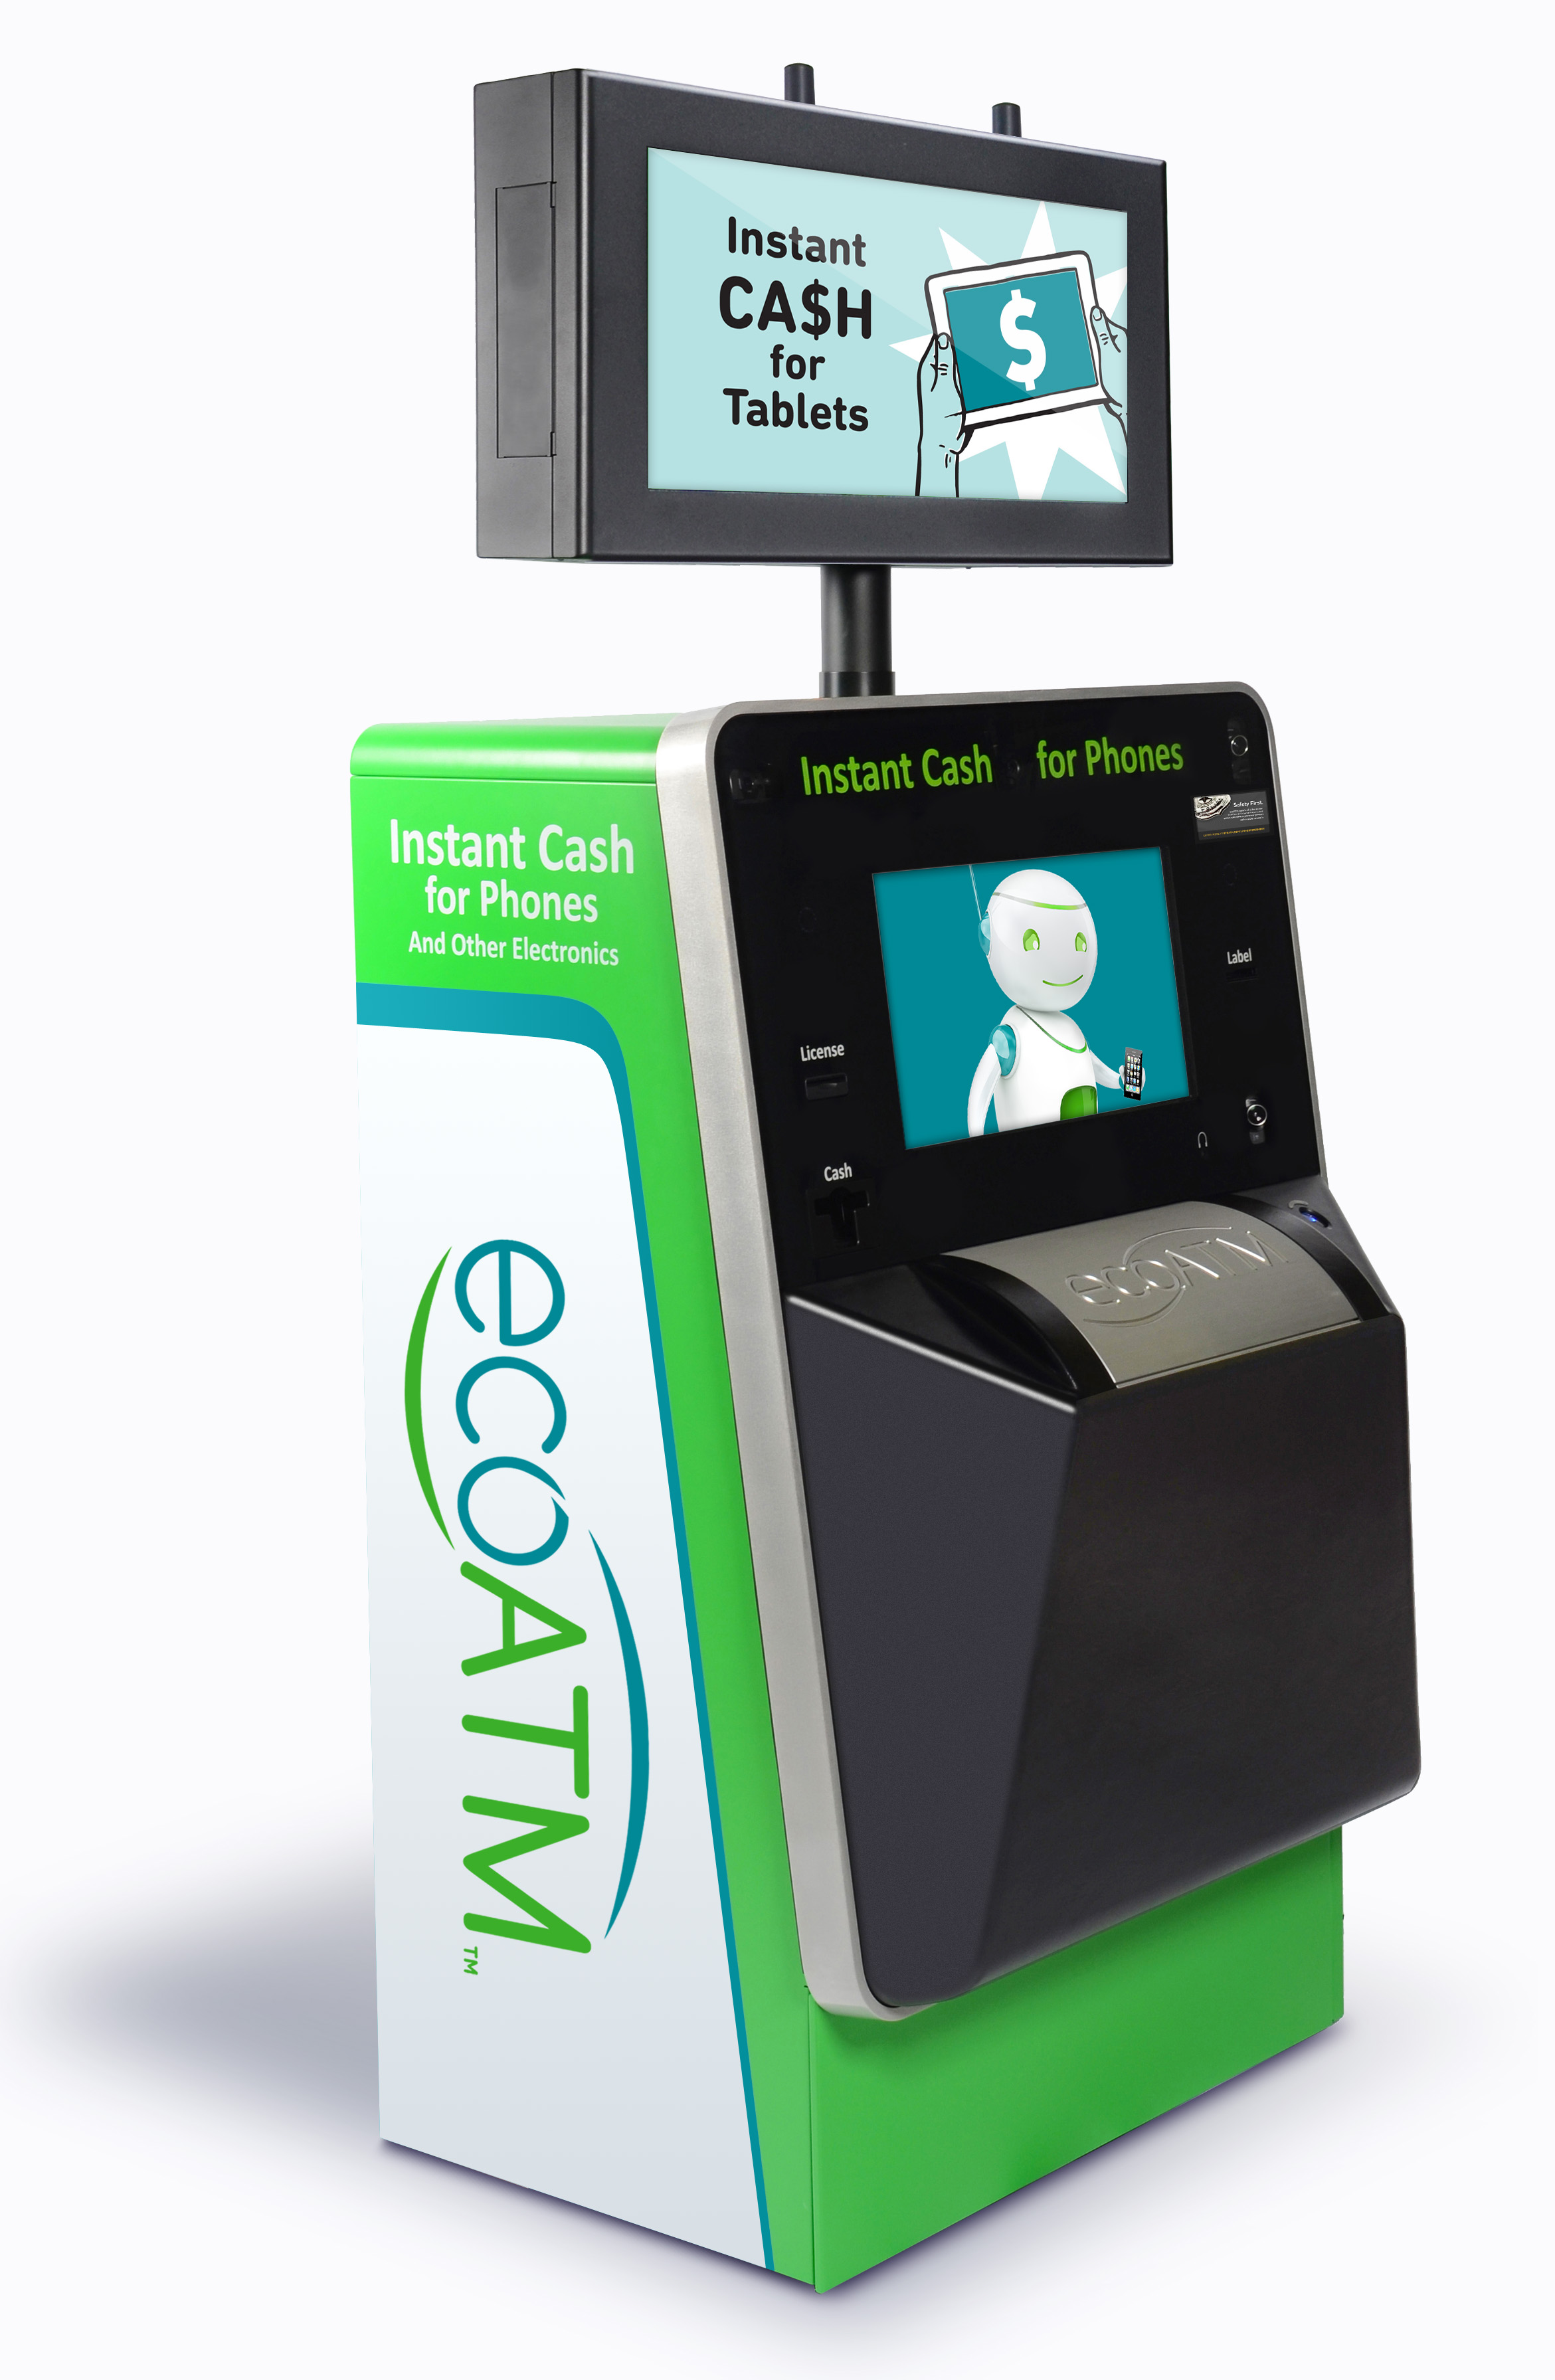 Mockup of Animation on Kiosk display